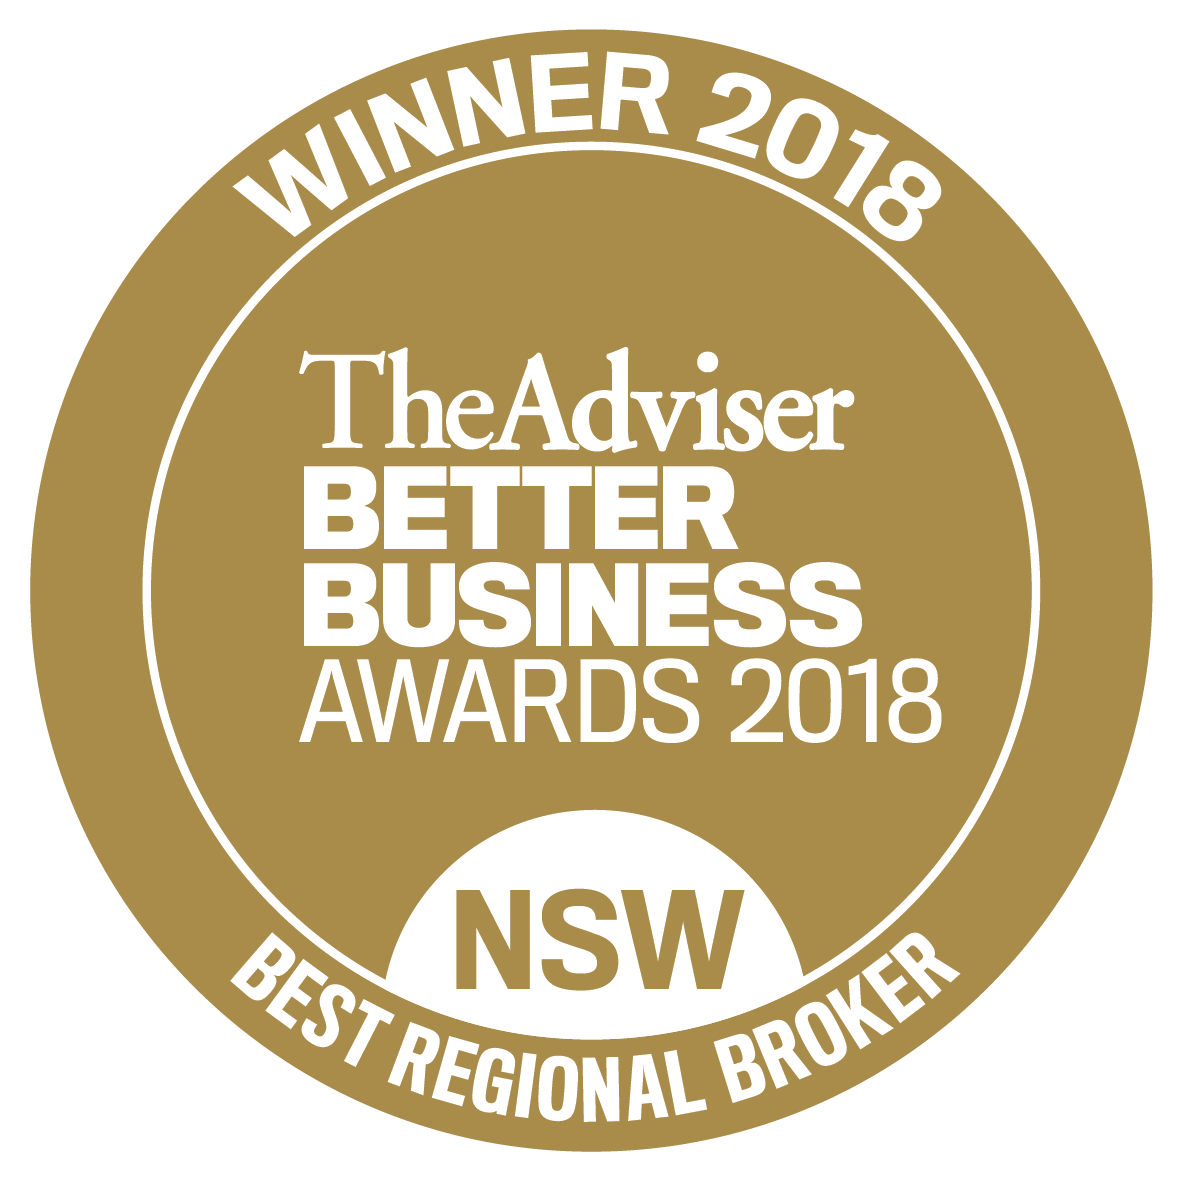 BBS_Winners__Best Regional Broker (002).png